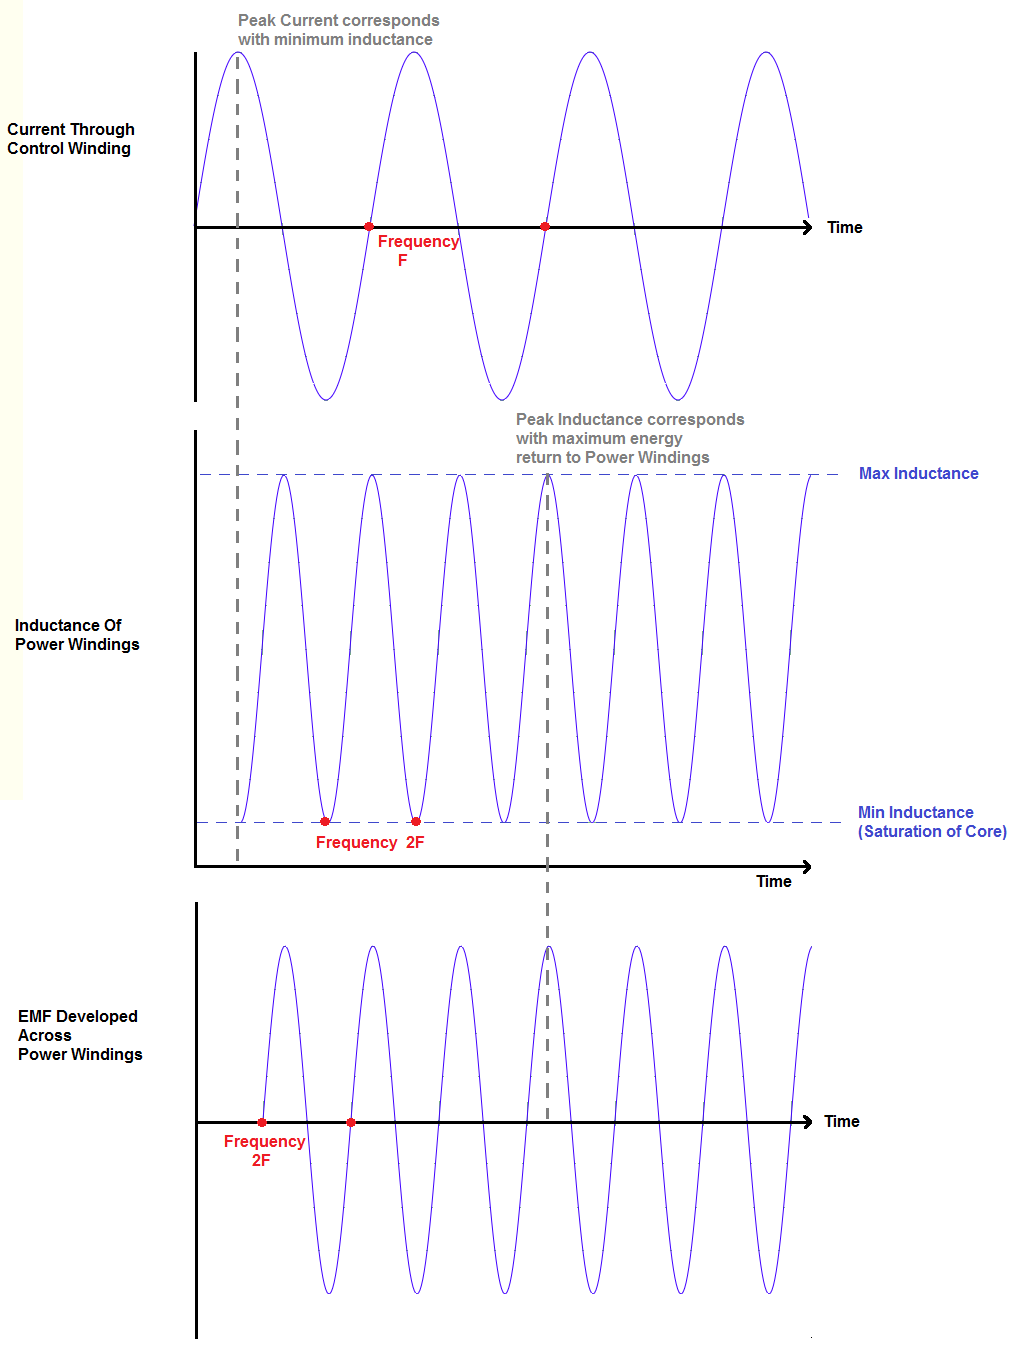 Theoretical Inductance changes